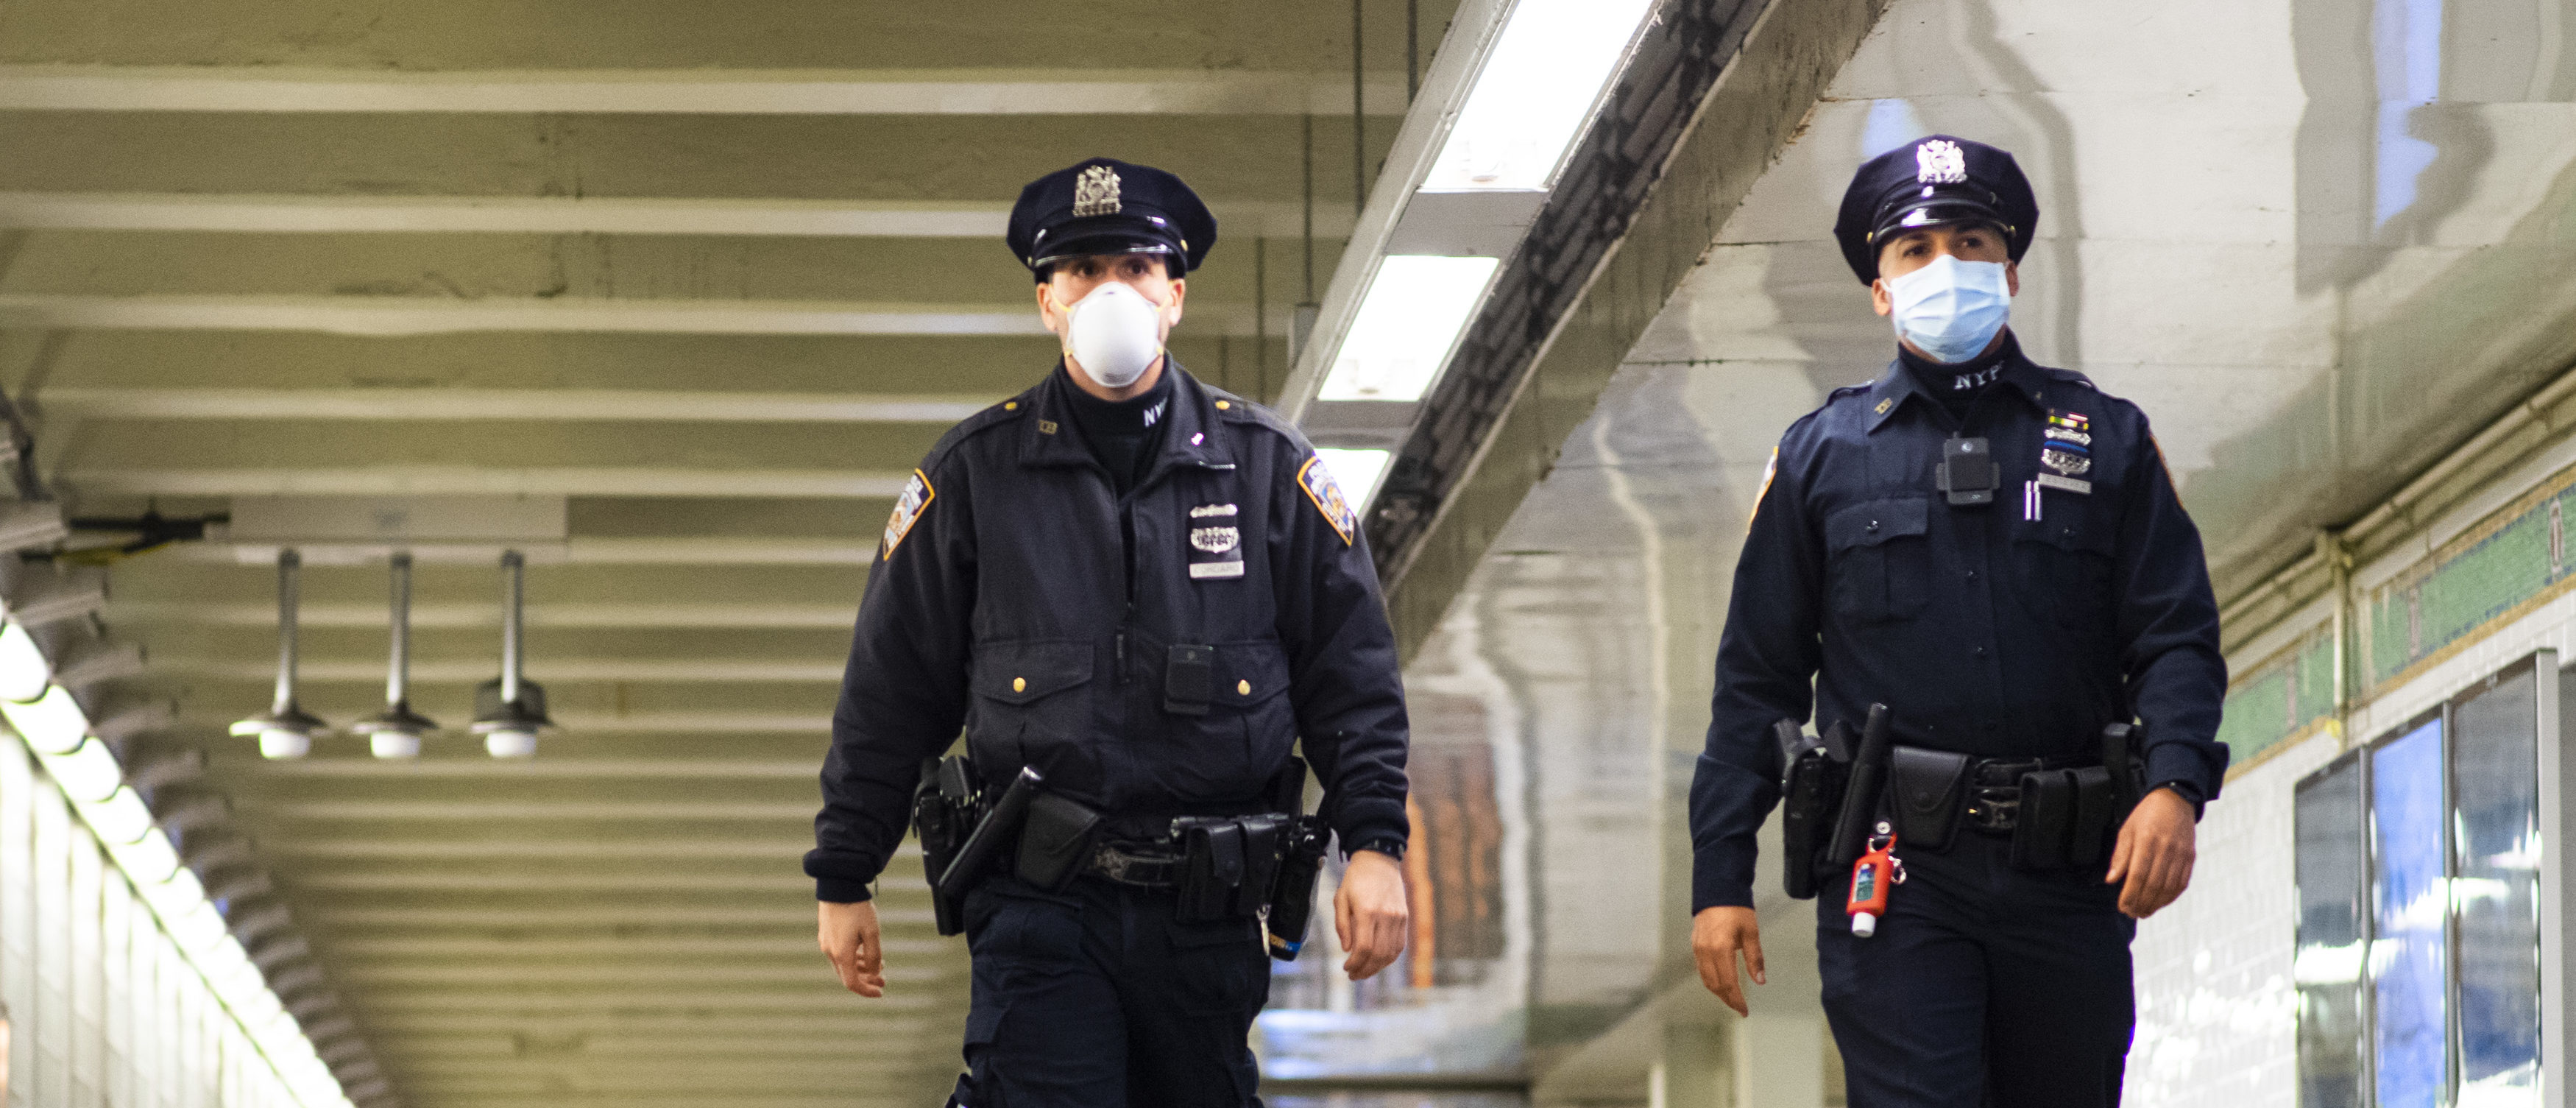 NYPD officers patrol inside Times Square station as the New York City subway system (Eduardo Munoz Alvarez/Getty Images)